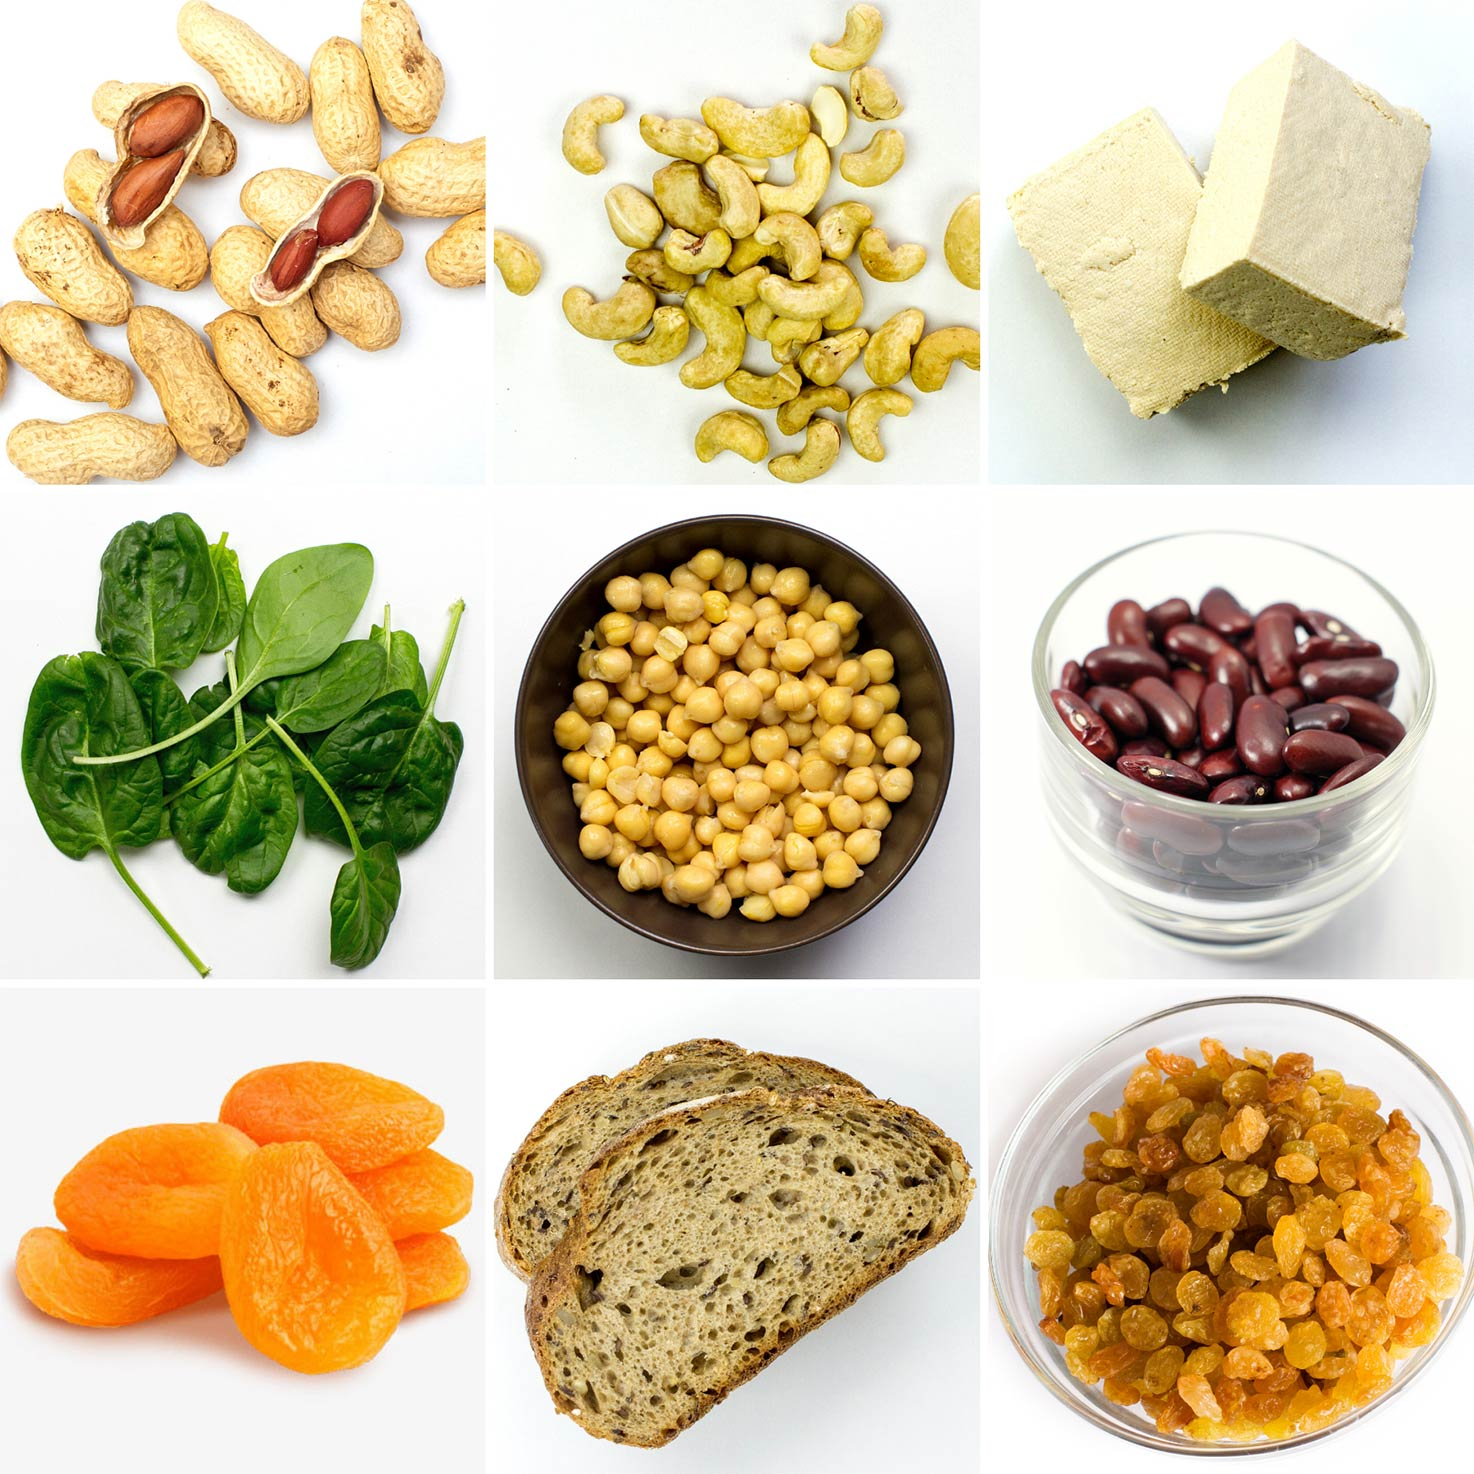 Vegetarian sources of Iron: chickpeas, kidney beans, peanuts, tofu, raisins, bread | hurrythefoodup.com